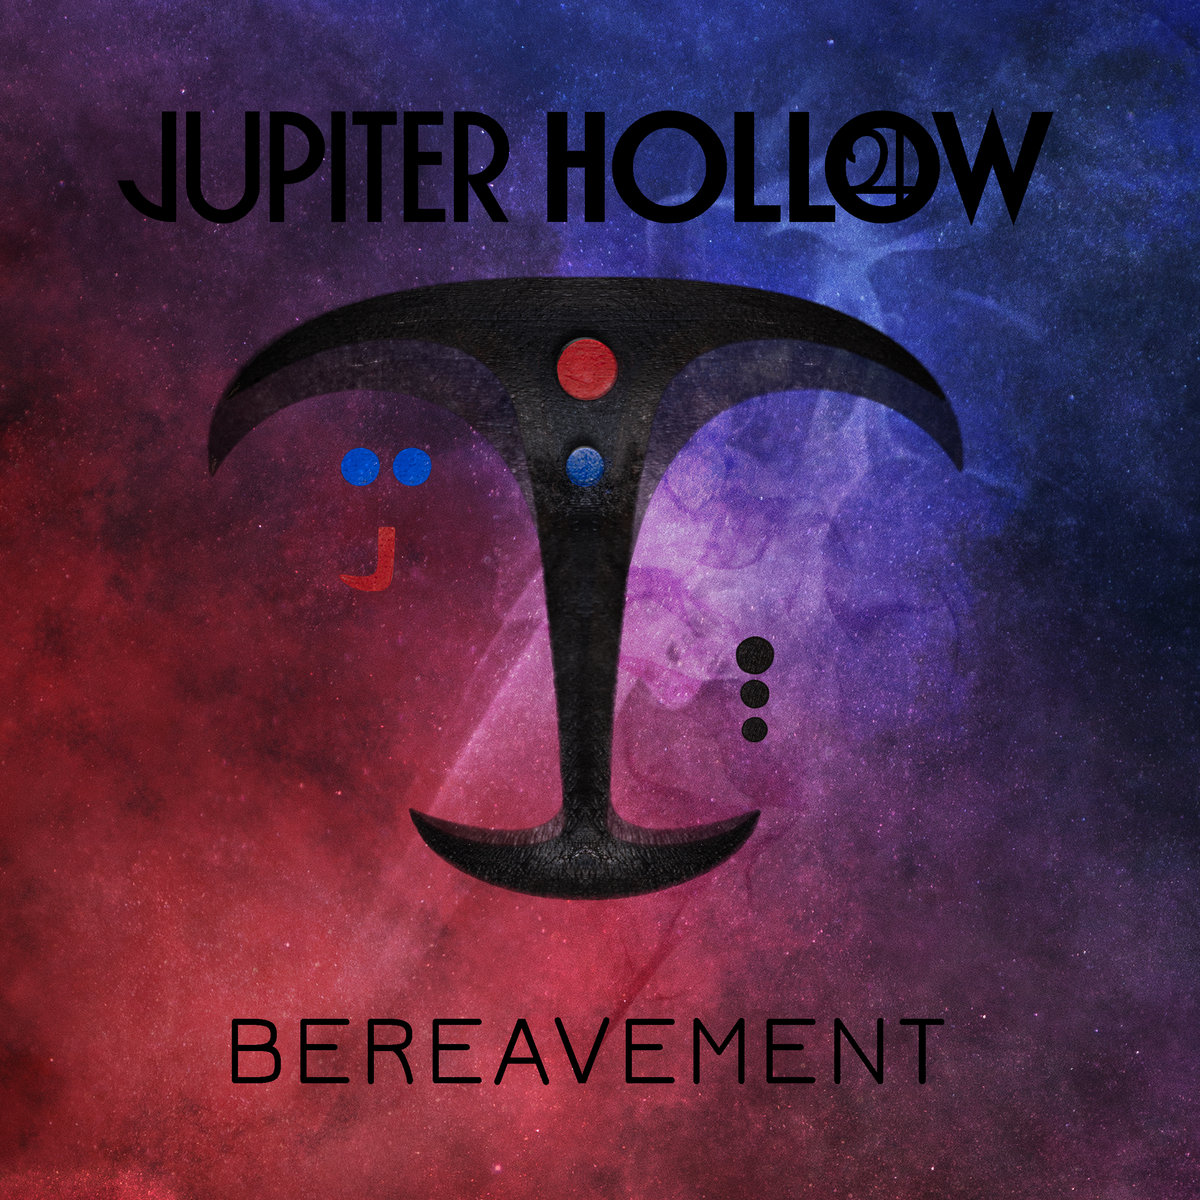 Jupiter Hollow: Bereavement